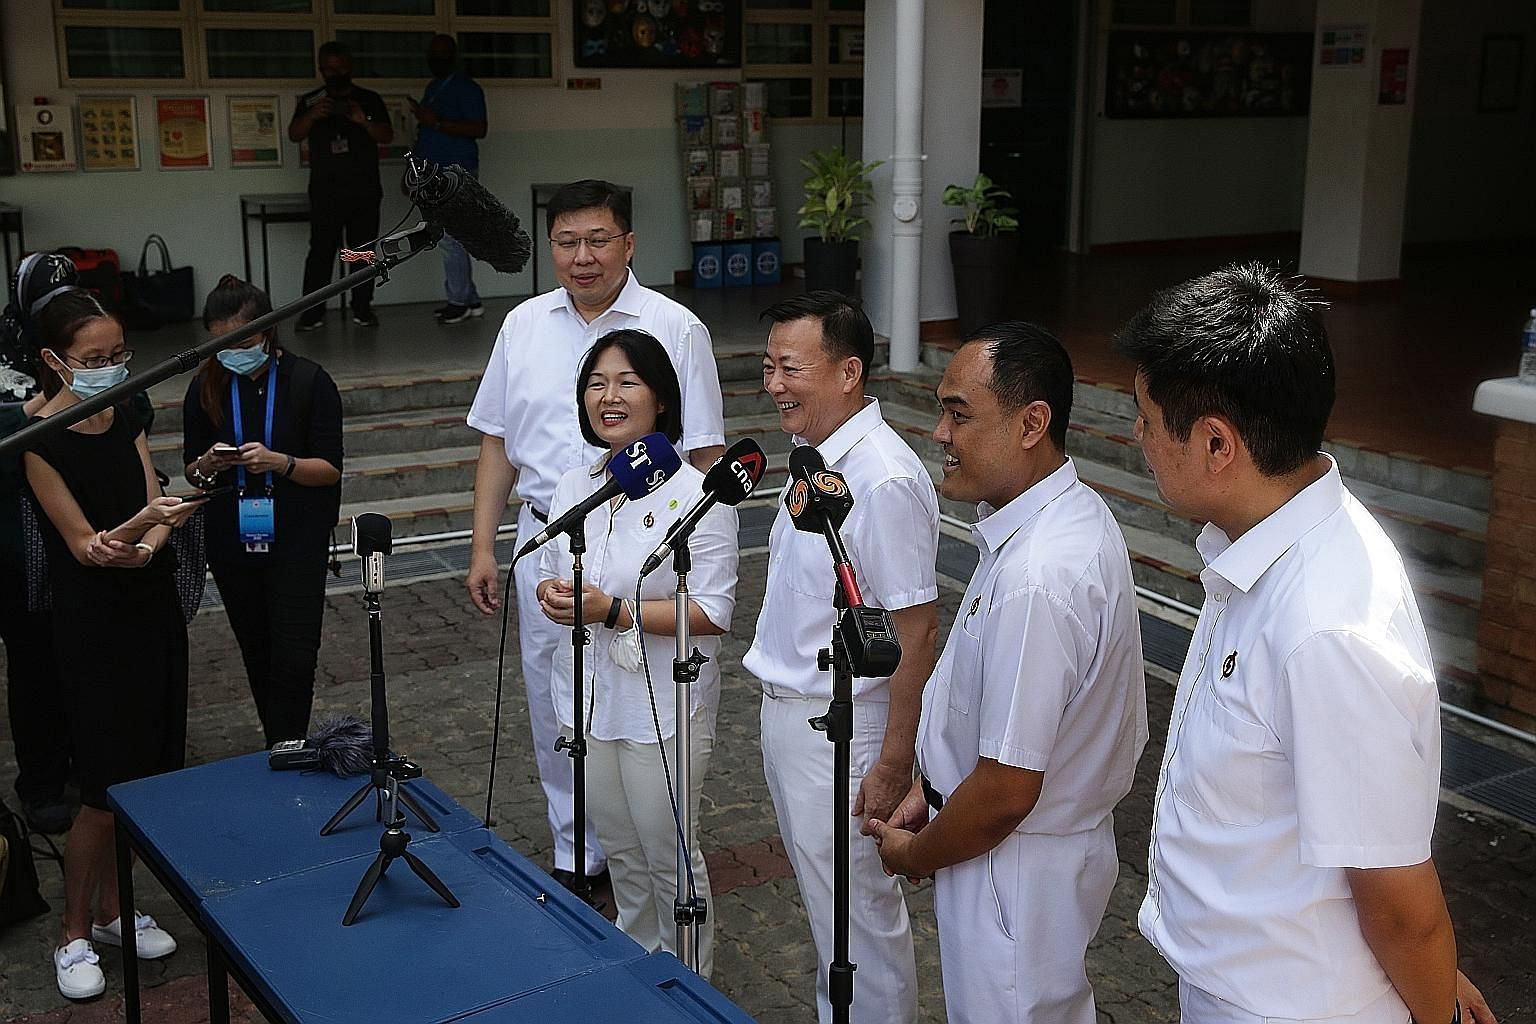 Workers' Party chief Pritam Singh and chairman Sylvia Lim speaking to the media with fellow Aljunied GRC candidates (from left) Leon Perera, Faisal Manap and Gerald Giam at Deyi Secondary School yesterday. The WP has fielded its strongest slate in th